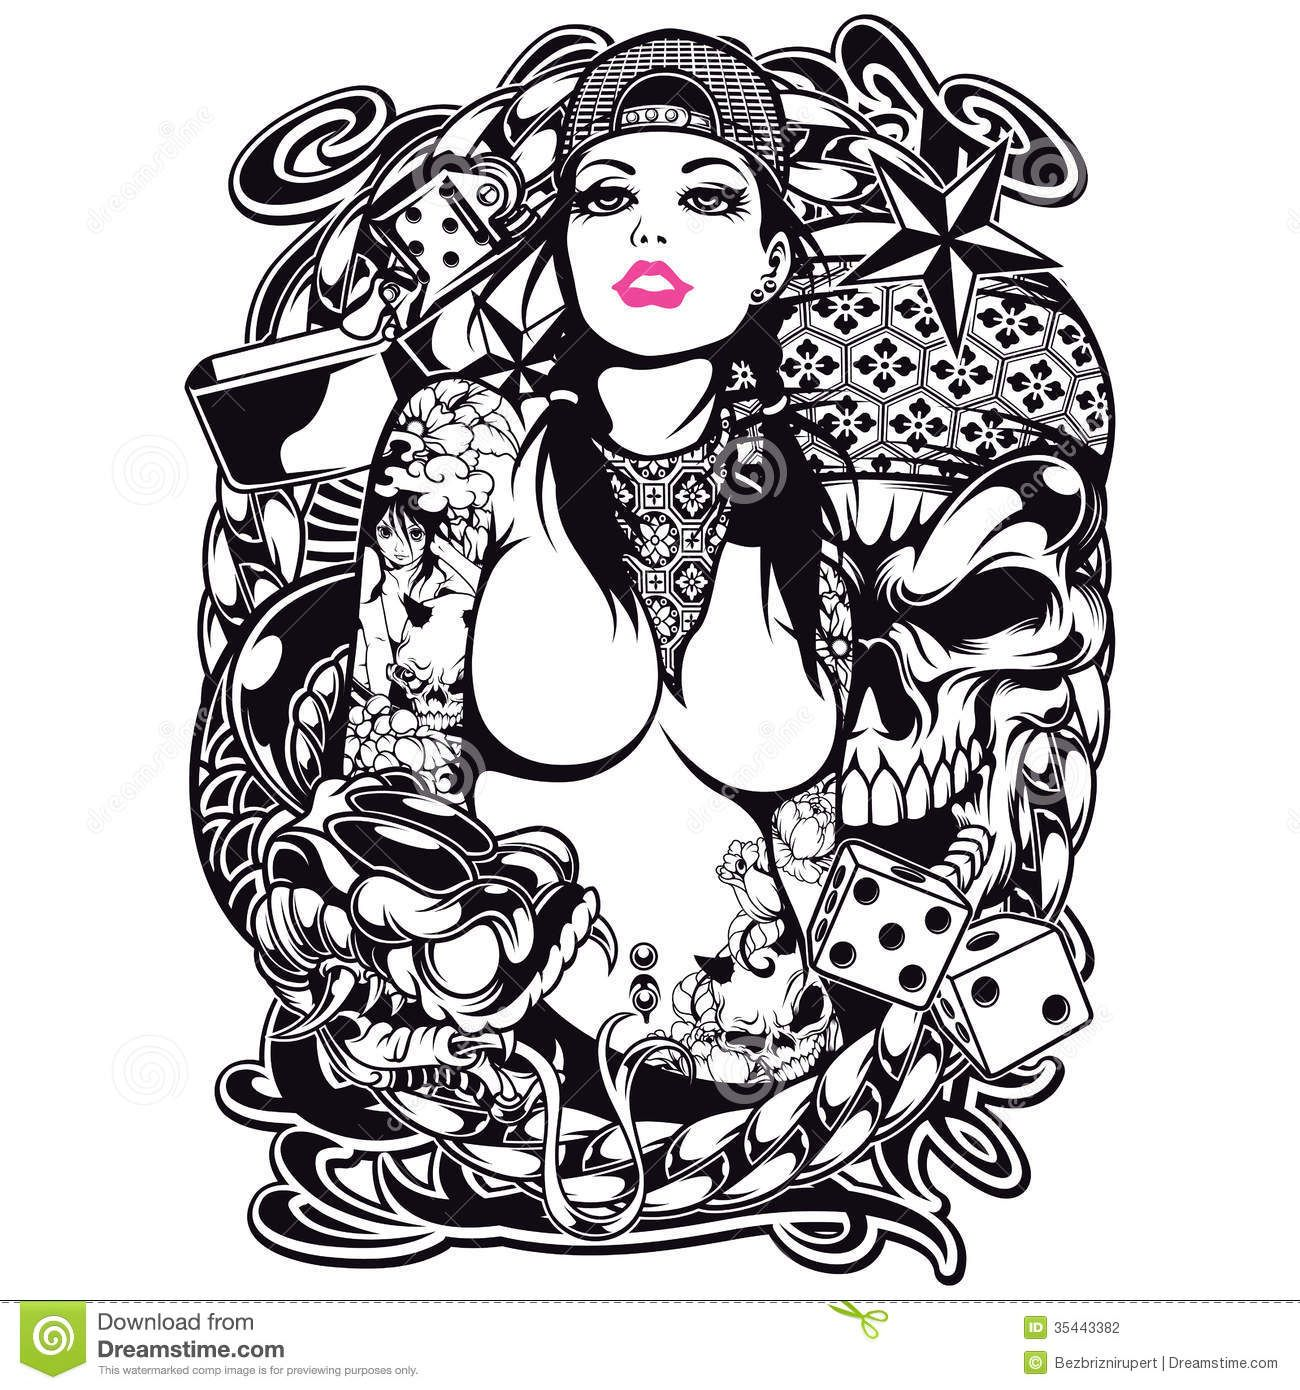 Tribal design t shirt - Image For Tattoo Girl Shirt Design Stock Photography Image 35443382